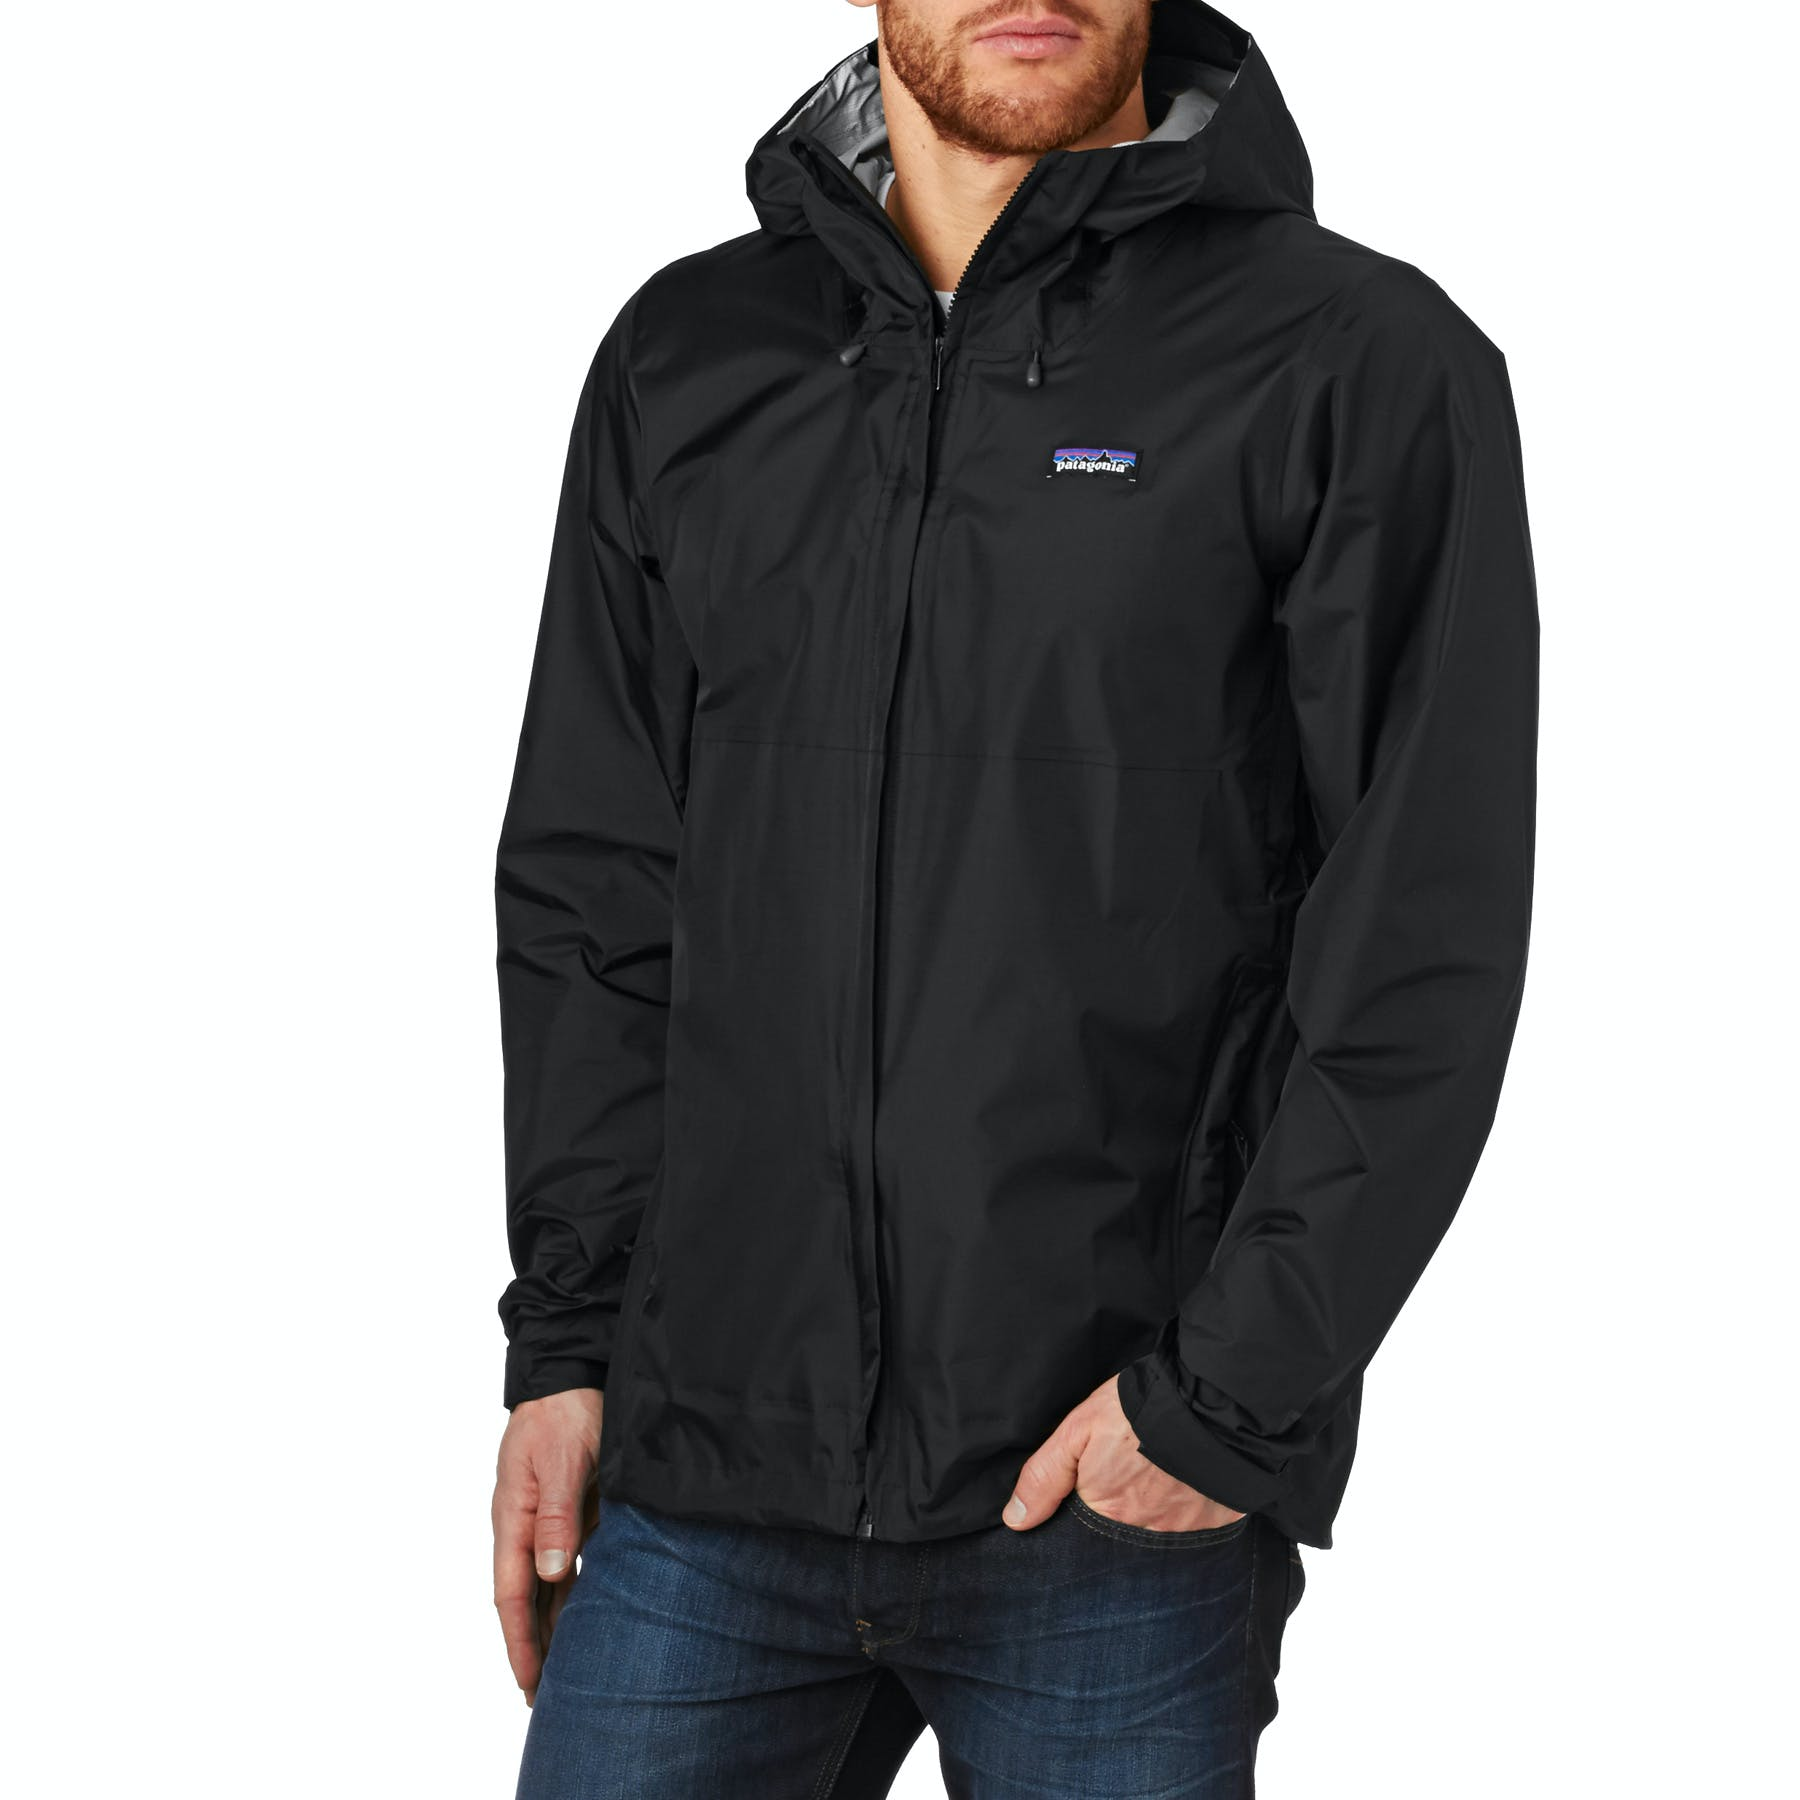 free shipping fashion style big selection Patagonia Torrentshell Jacket - Free Delivery options on All Orders from  Surfdome UK